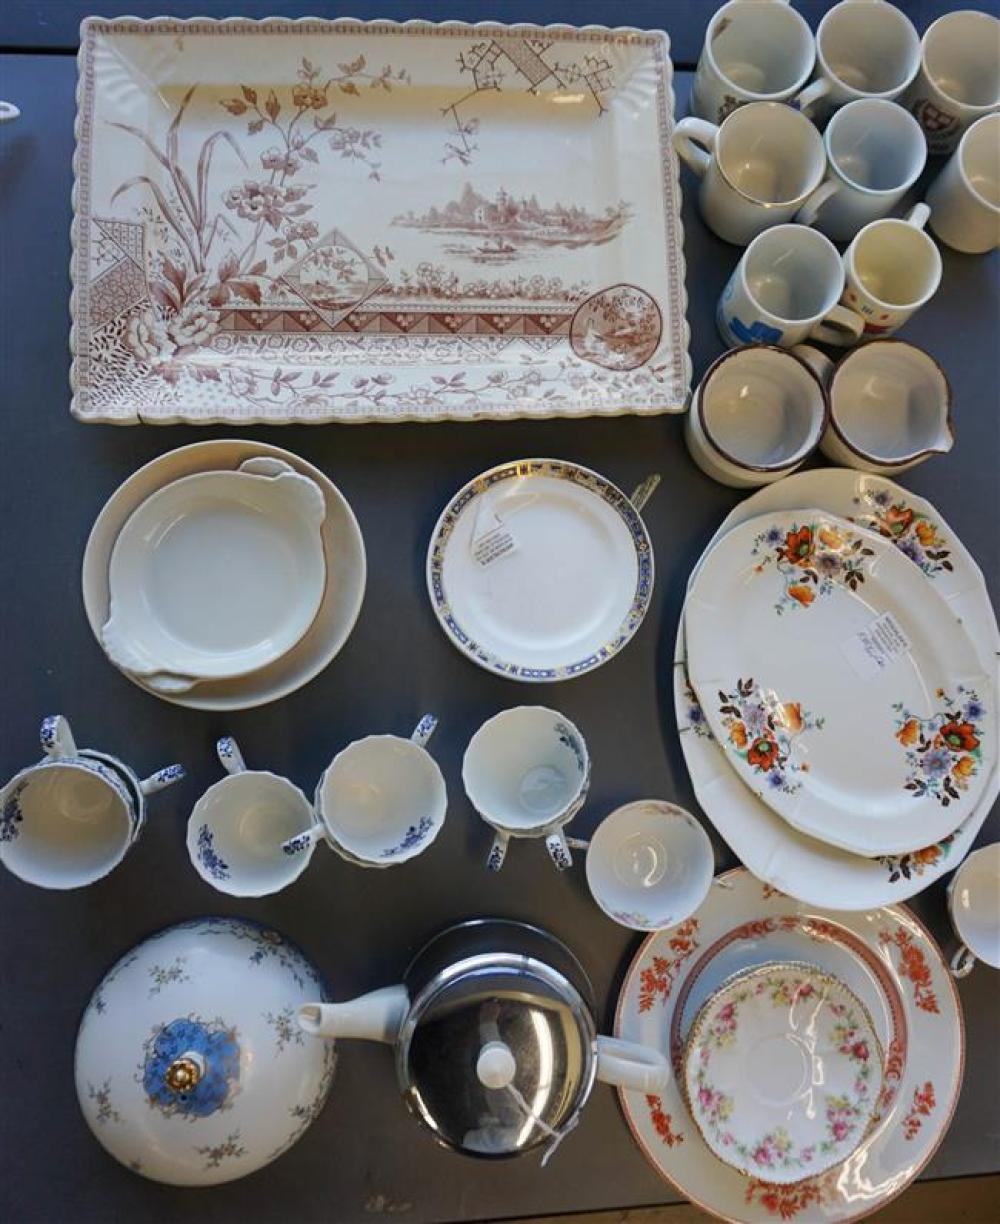 Group with Porcelain, Ironstone and Ceramic Table Articles